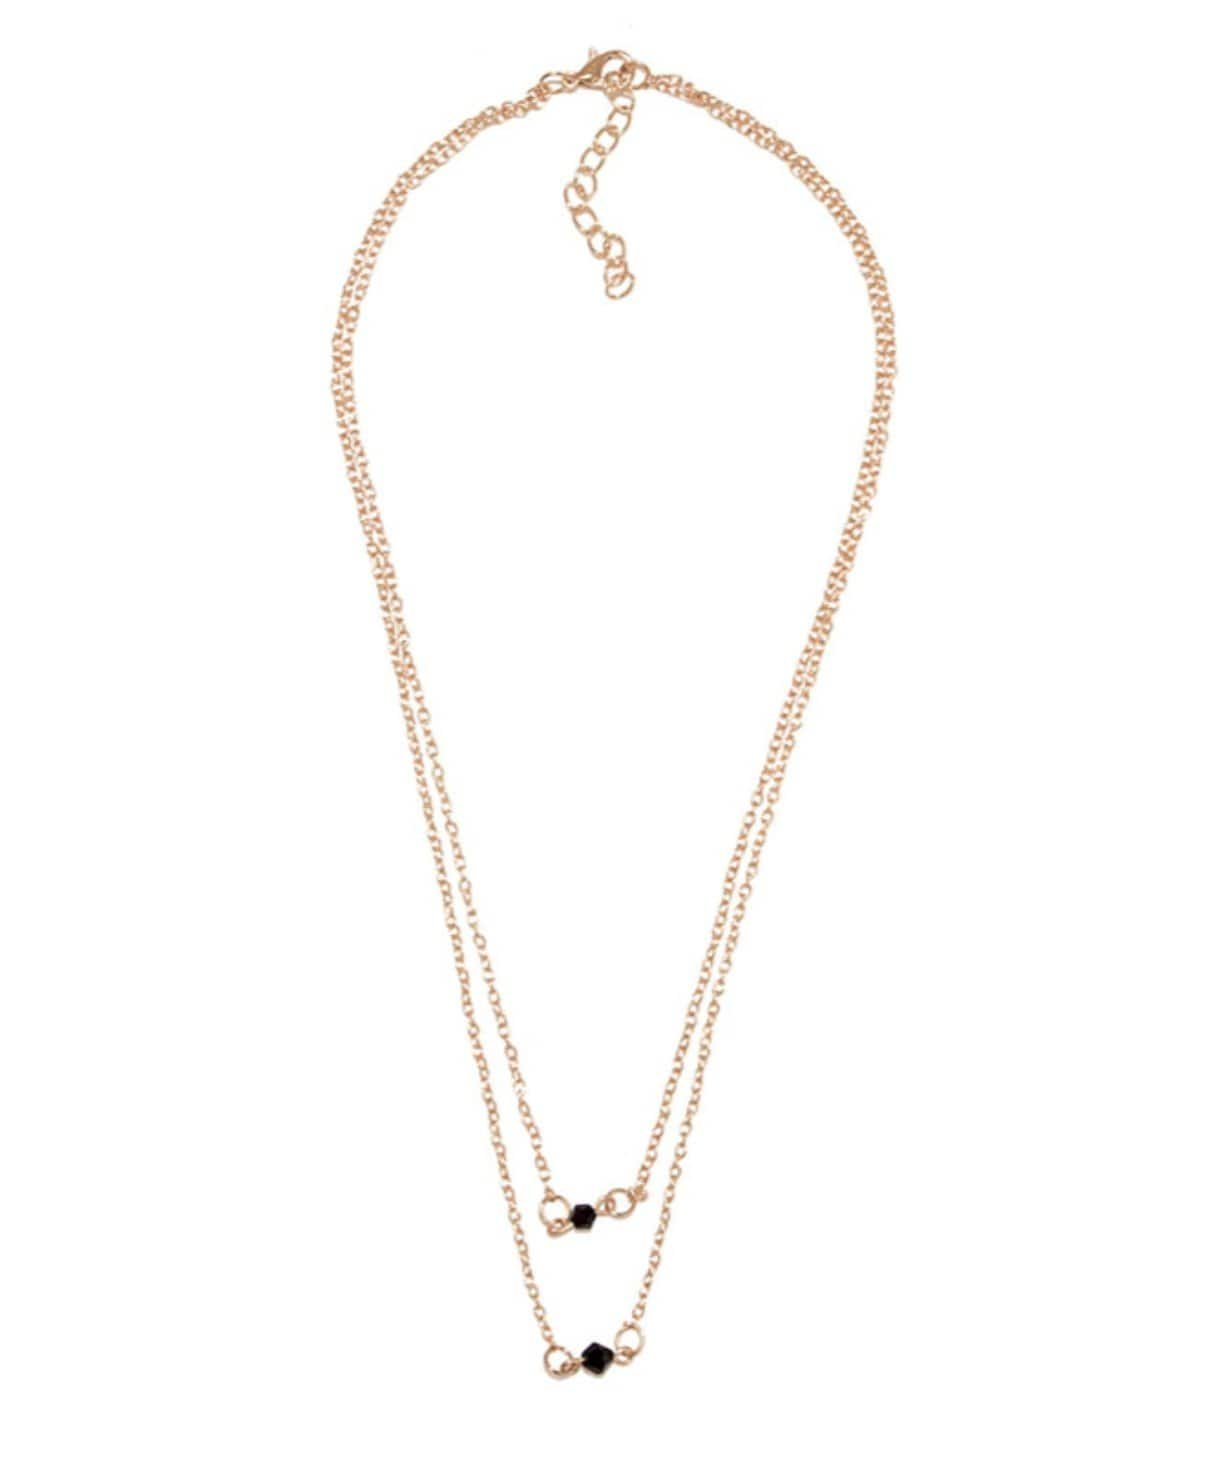 Black Bead Dainty Necklace - Uptownie